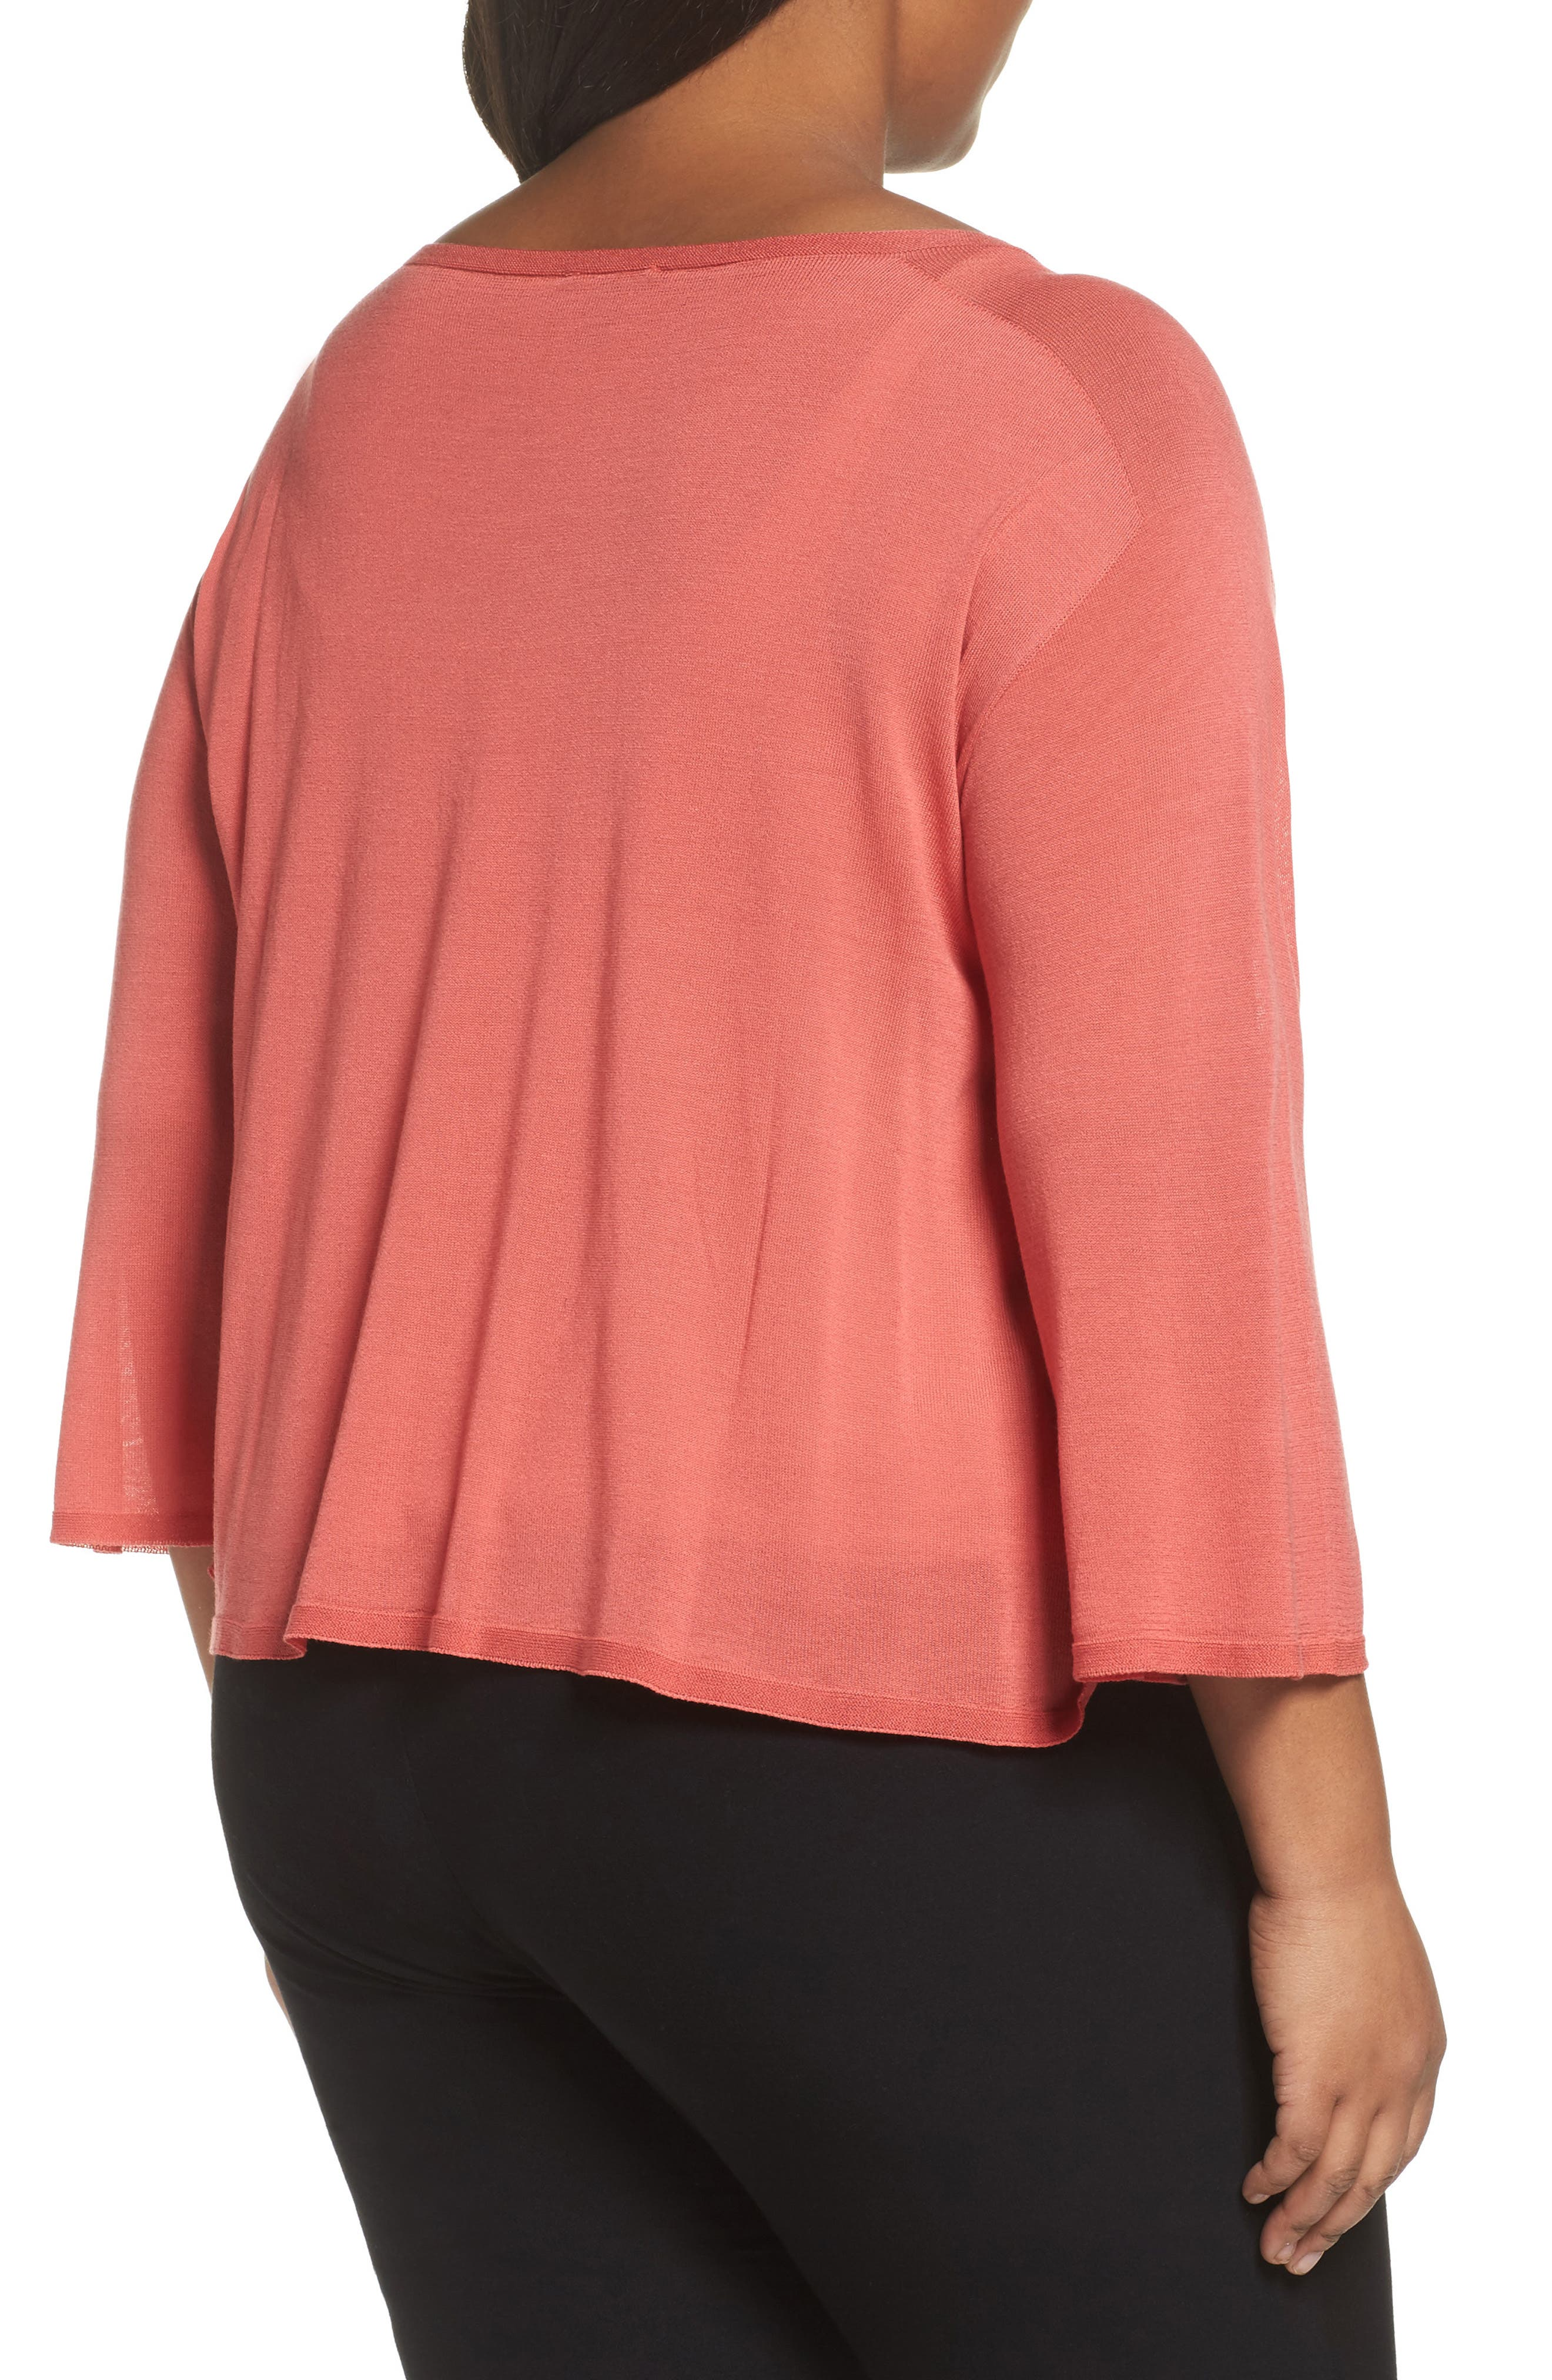 Tencel<sup>®</sup> Lyocell Lyocell Knit Sweater,                             Alternate thumbnail 4, color,